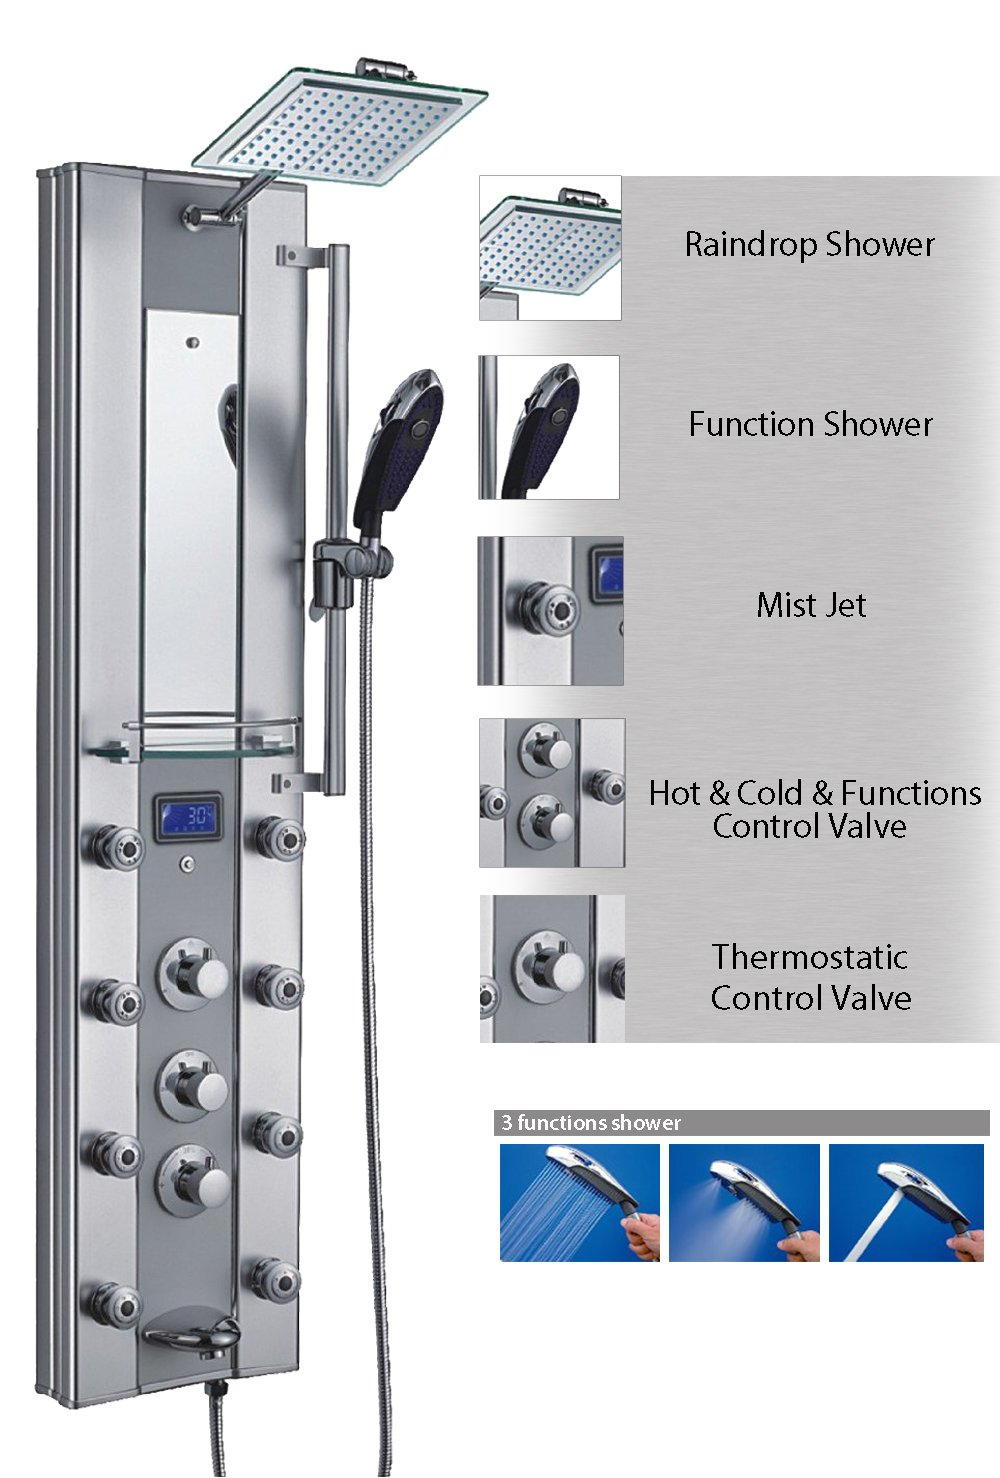 AKDY 62318 51'' Aluminum Thermostatic Shower Panel with Massage Spout Spray by AKDY